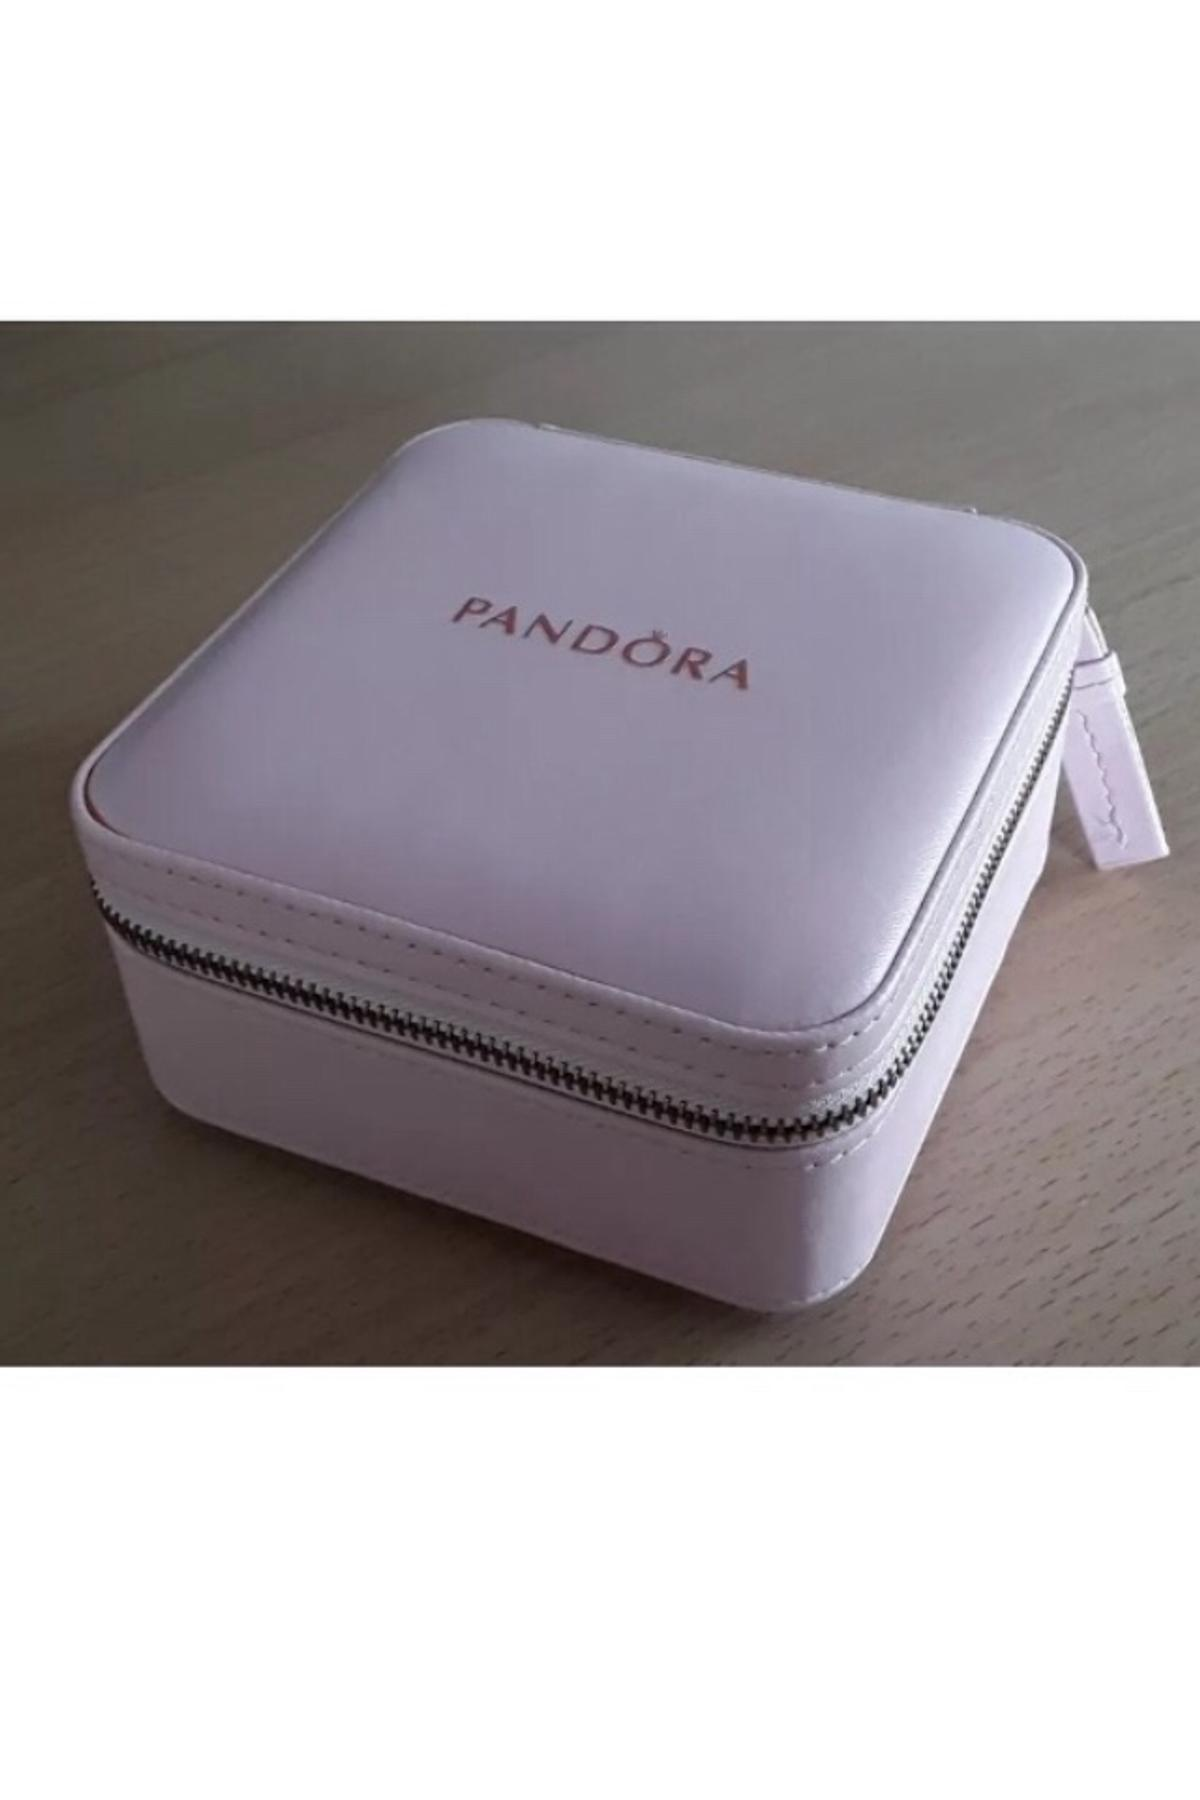 Pandora S Jewellery Travel Case In Sw9 Londres For 15 00 For Sale